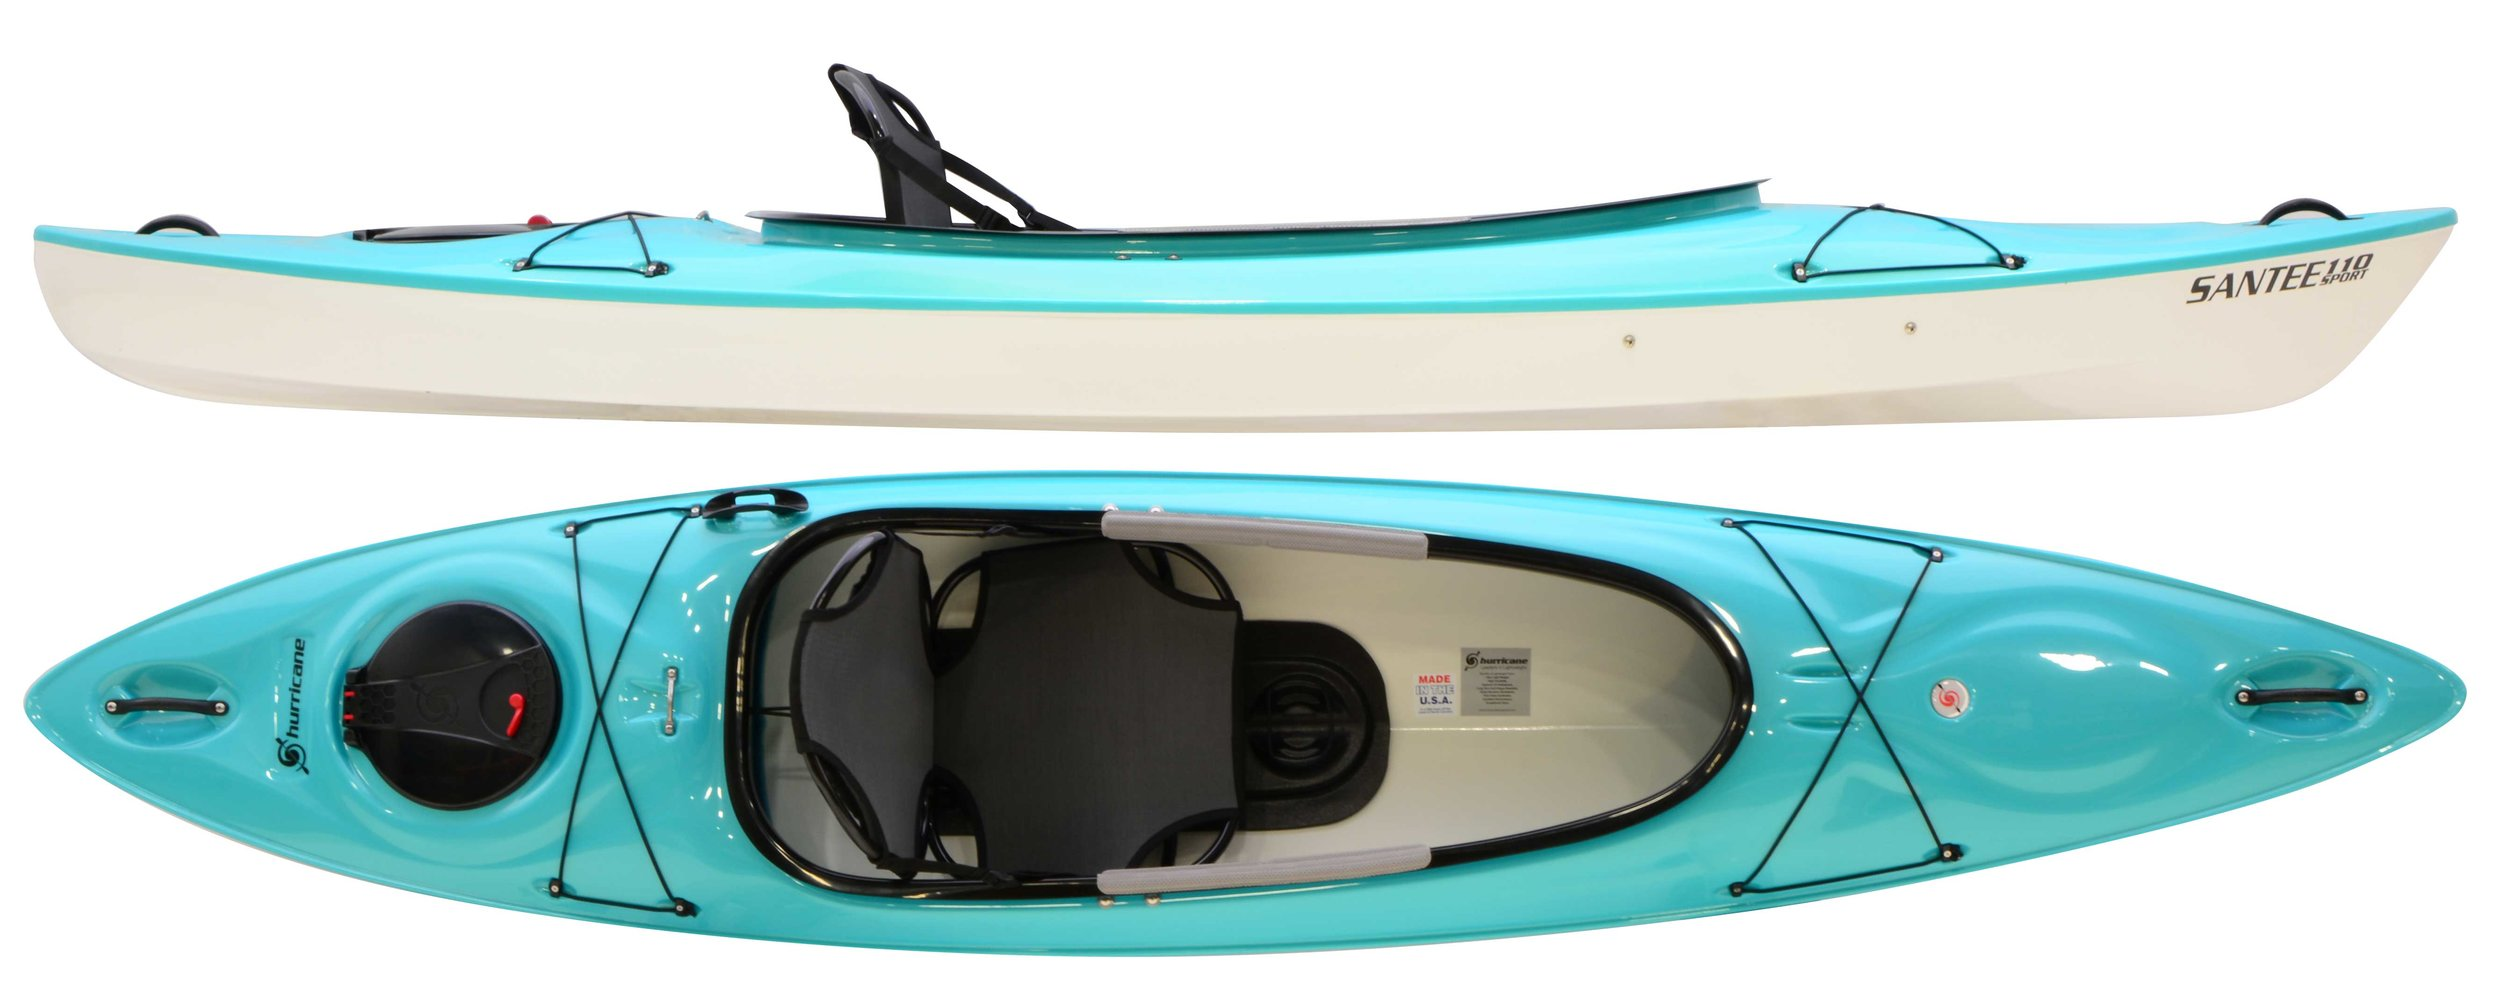 Santee 110 Sport:  The Ultimate frame seat has found a comfy home in the NEW Hurricane Santee 110 Sport - a super stable, super lightweight kayak with excellent tracking and stylish aesthetics. Designed with a hard-chined hull for superior performance, a generous sport cockpit for easy entry and exit, a 10-inch hinge hatch for enhanced gear access, and a frame seat for ultimate comfort, the Santee 110 Sport is performance paddling in a relaxing package.